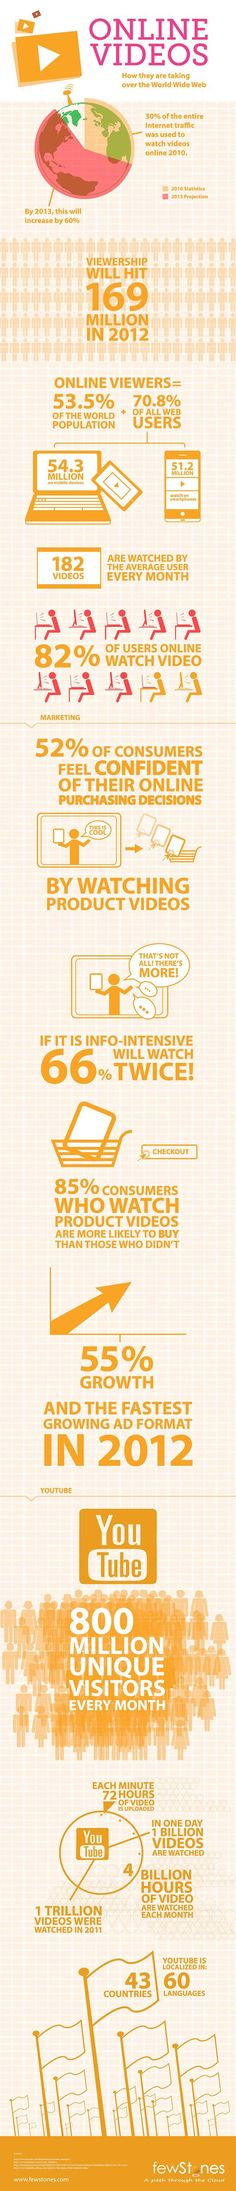 Infographic: How online videos are taking over the Internet